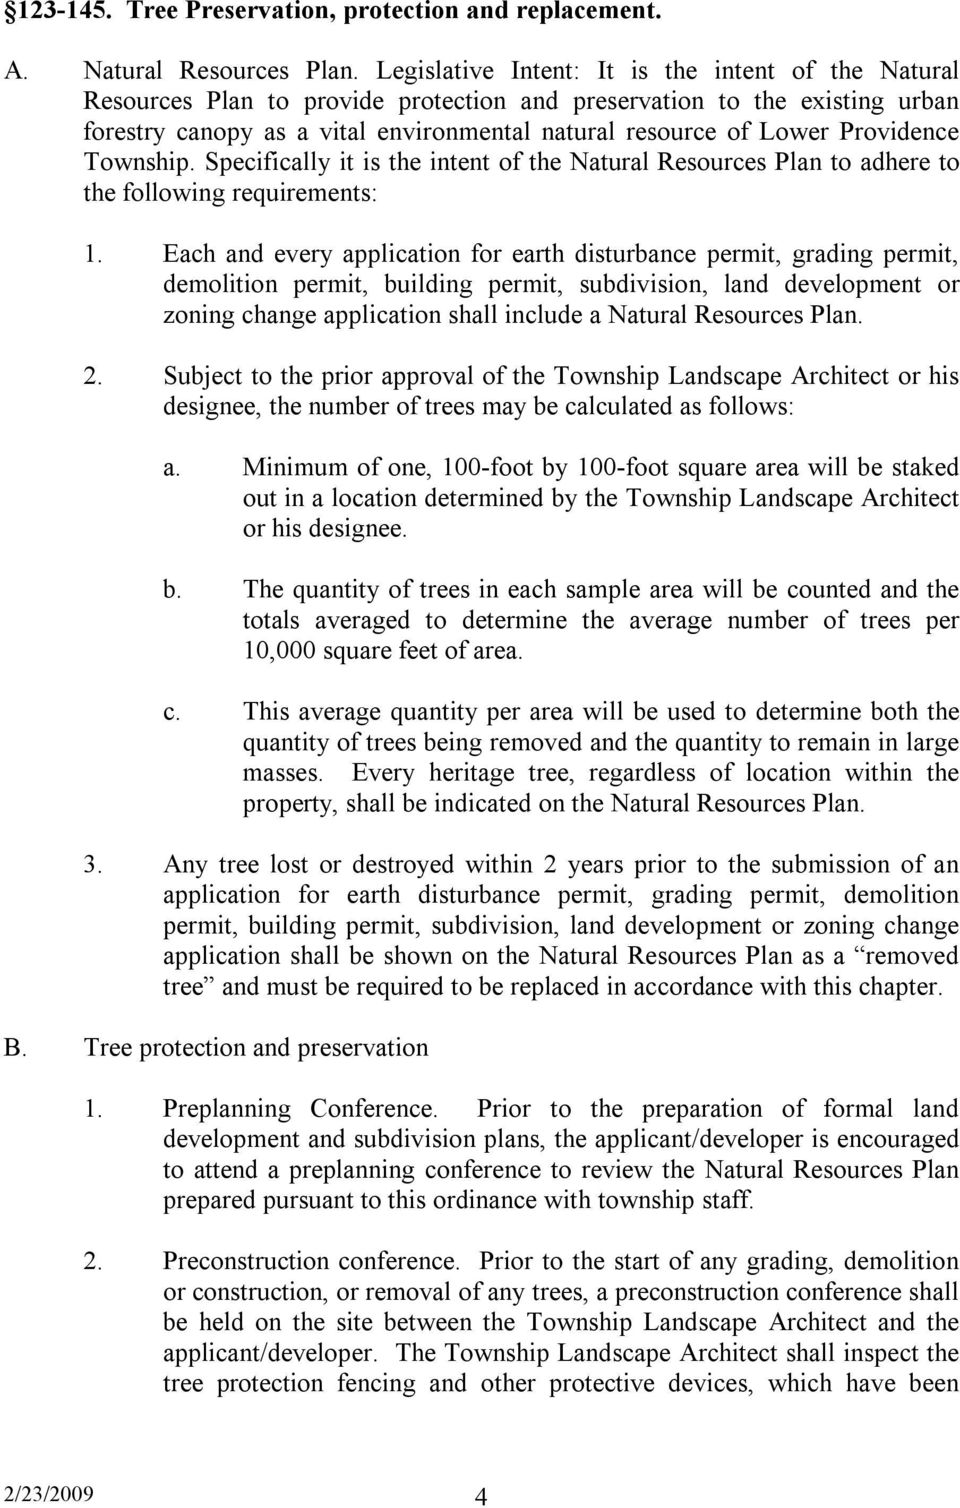 Providence Township. Specifically it is the intent of the Natural Resources Plan to adhere to the following requirements: 1.